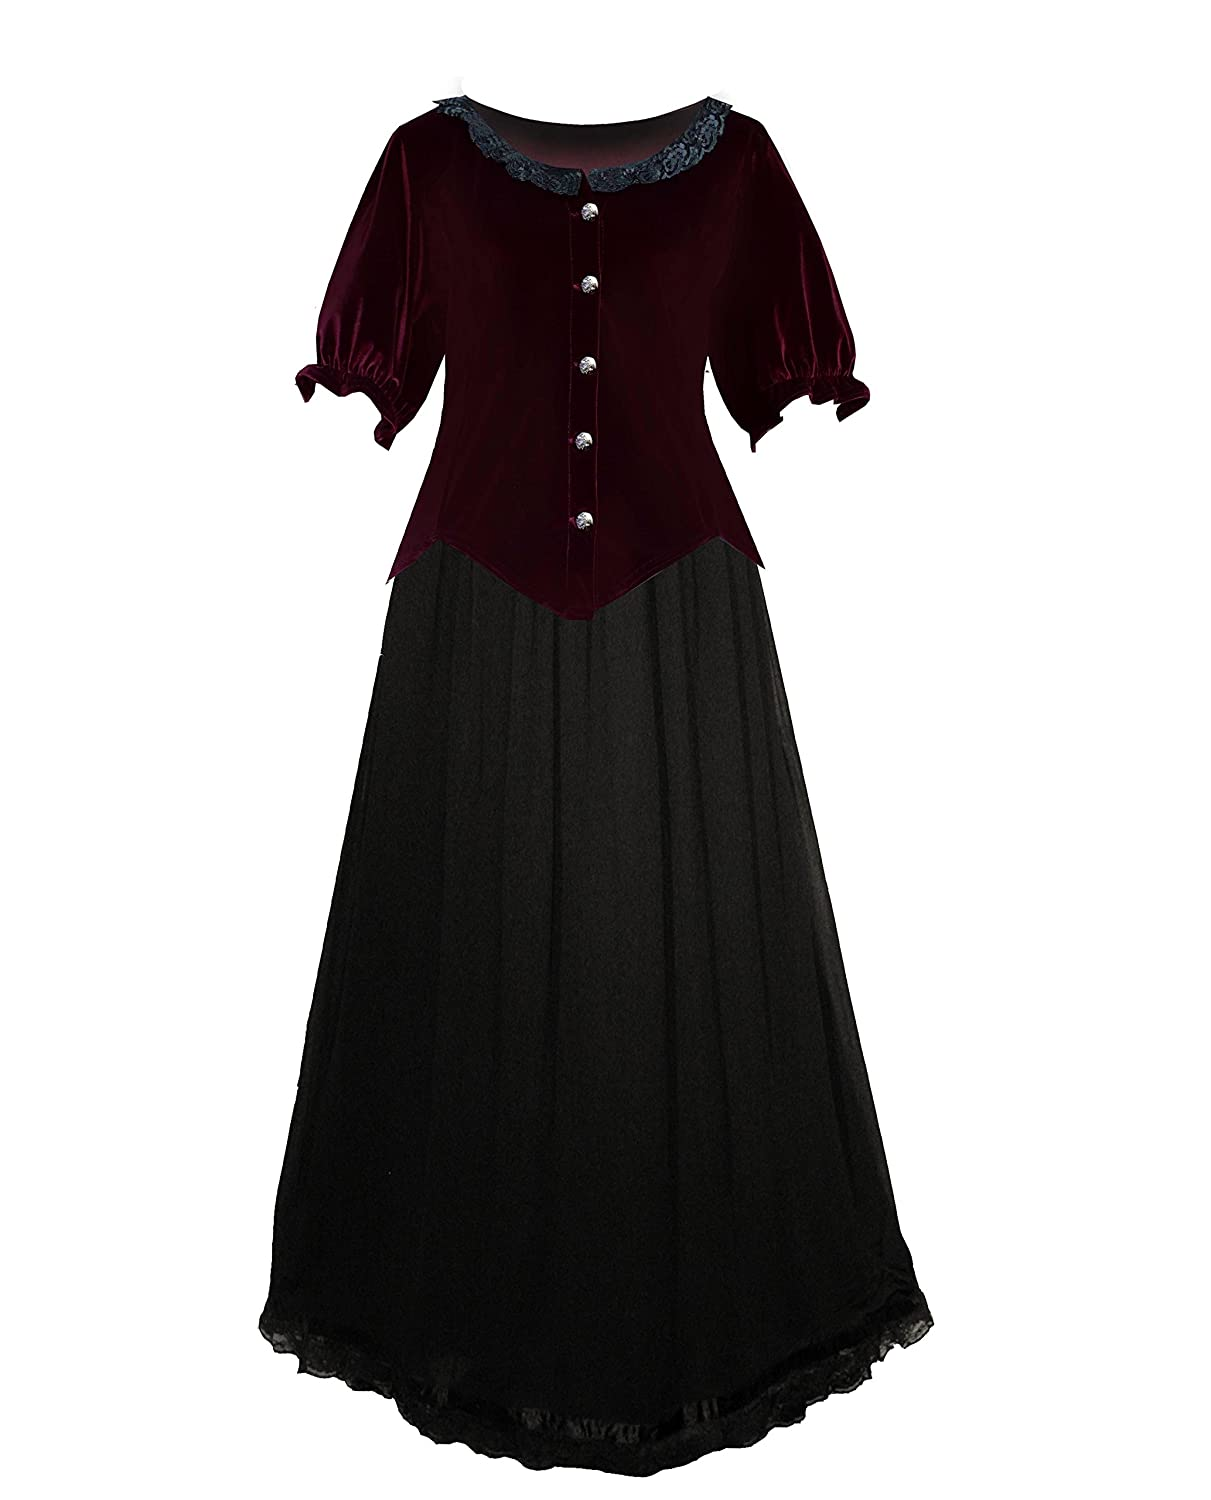 Vintage Tea Dresses, Floral Tea Dresses, Tea Length Dresses Victorian Steampunk Gothic Renaissance Velvet Top & Long Skirt $89.00 AT vintagedancer.com